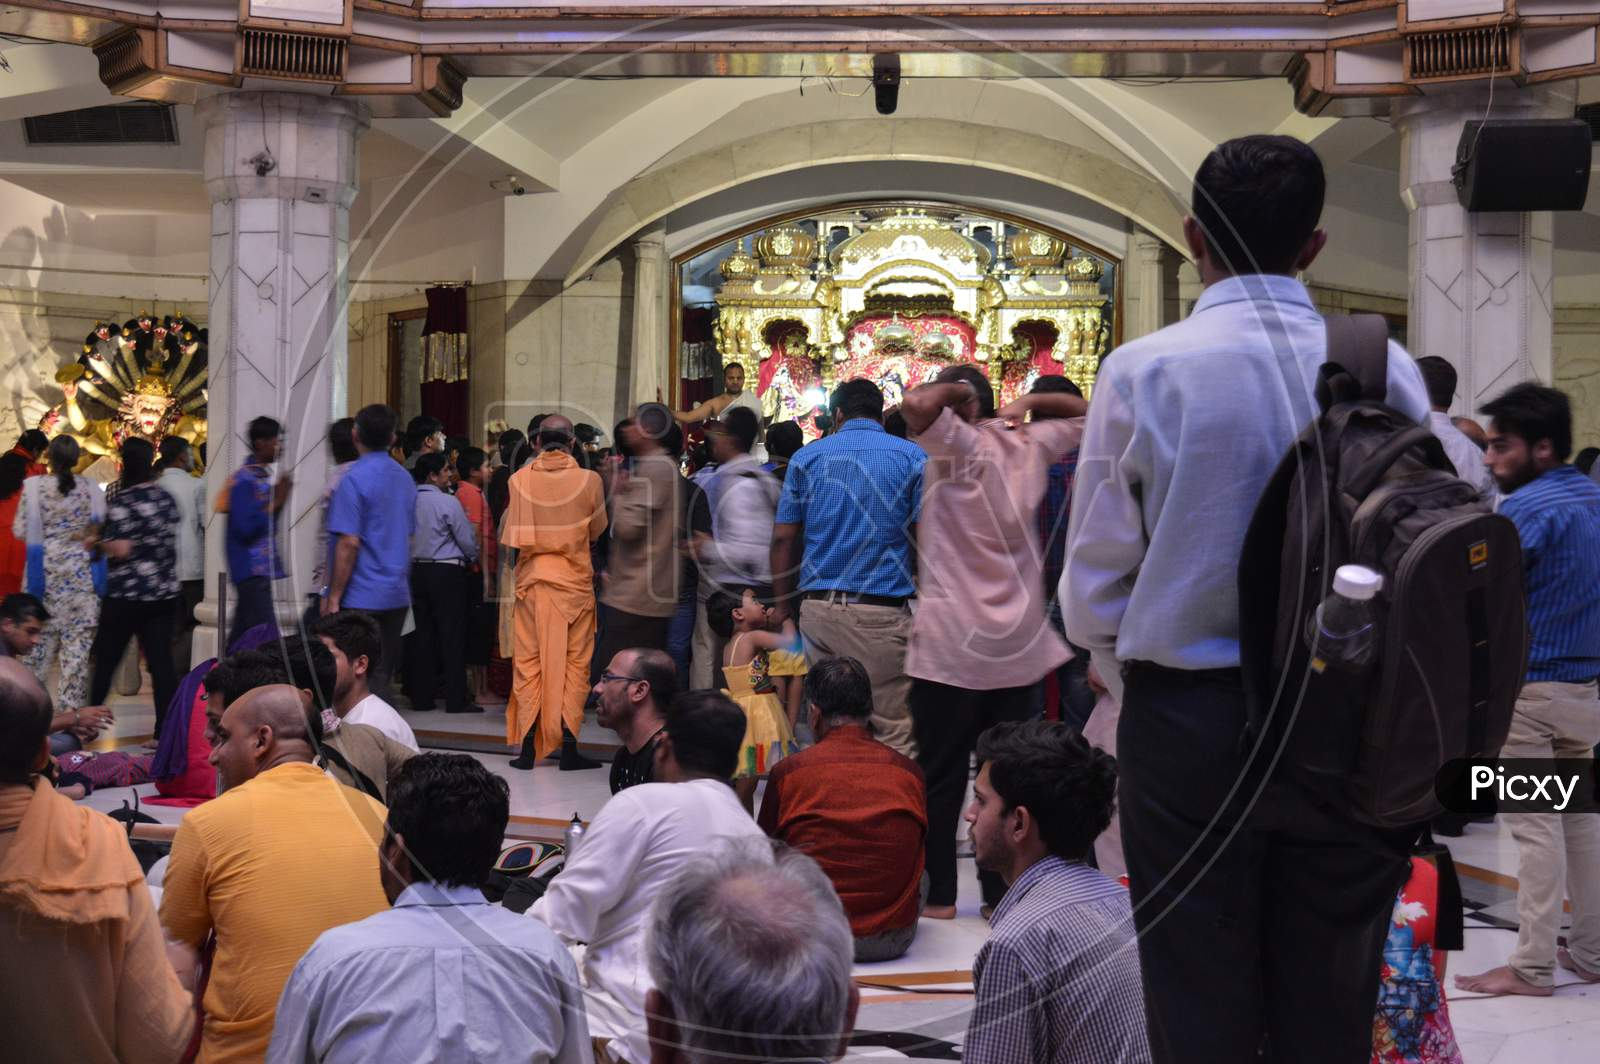 People Are Looking At God Lord Krishna And Praying For Good Wealth And Health On The Indian Festival Of Lord Krishna Birth Ceremony( Janmastami) At Iskcon Temple New Delhi, India.